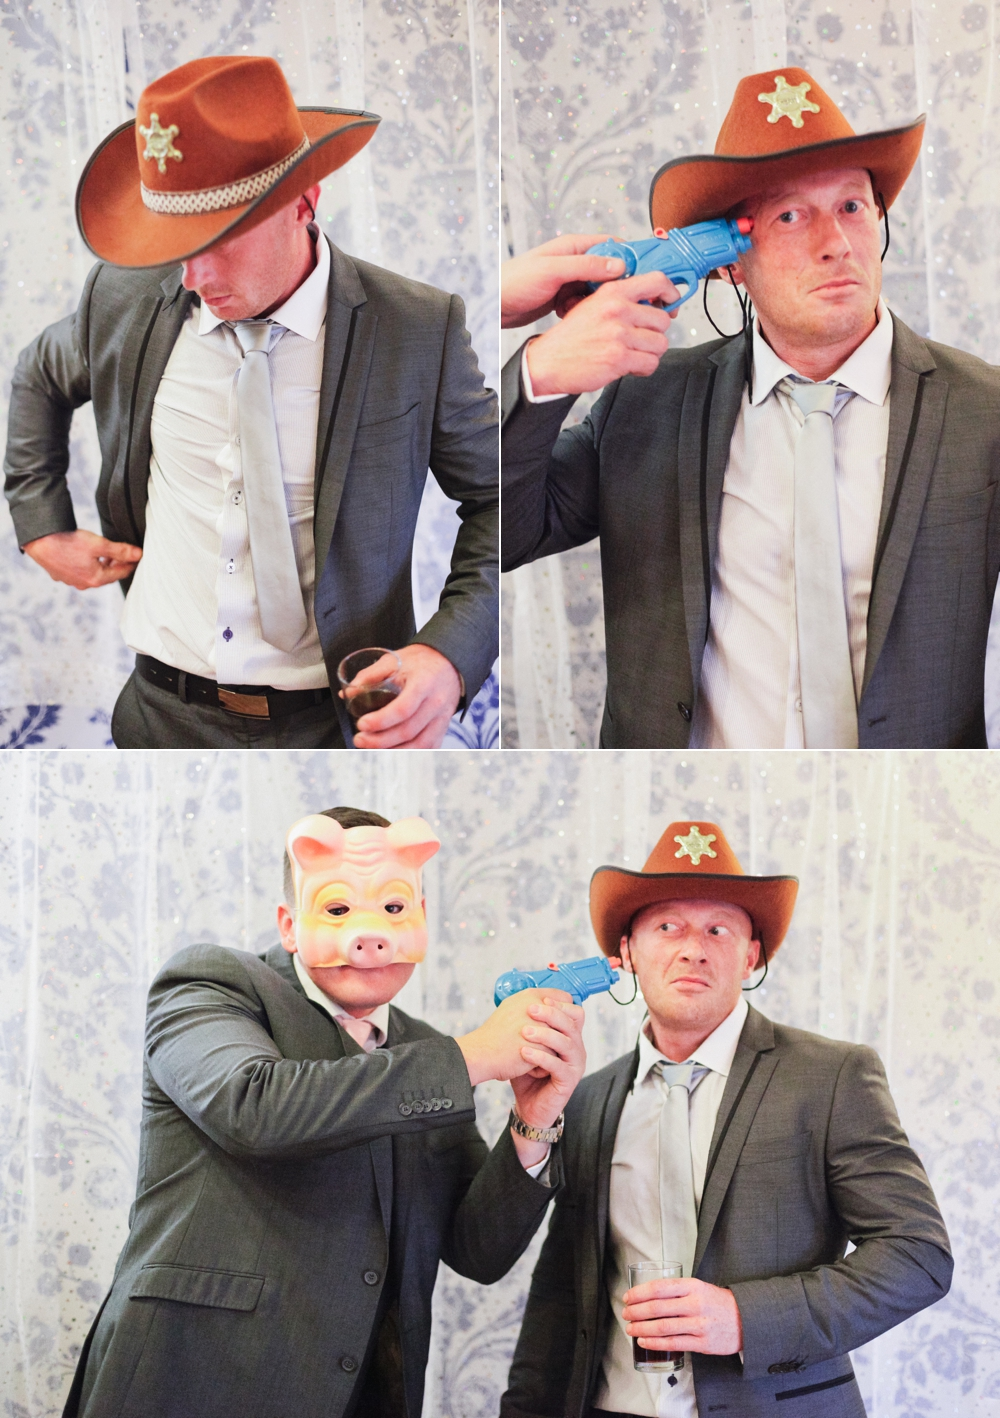 Wedding-Photo-Booth-Essex_0005.jpg